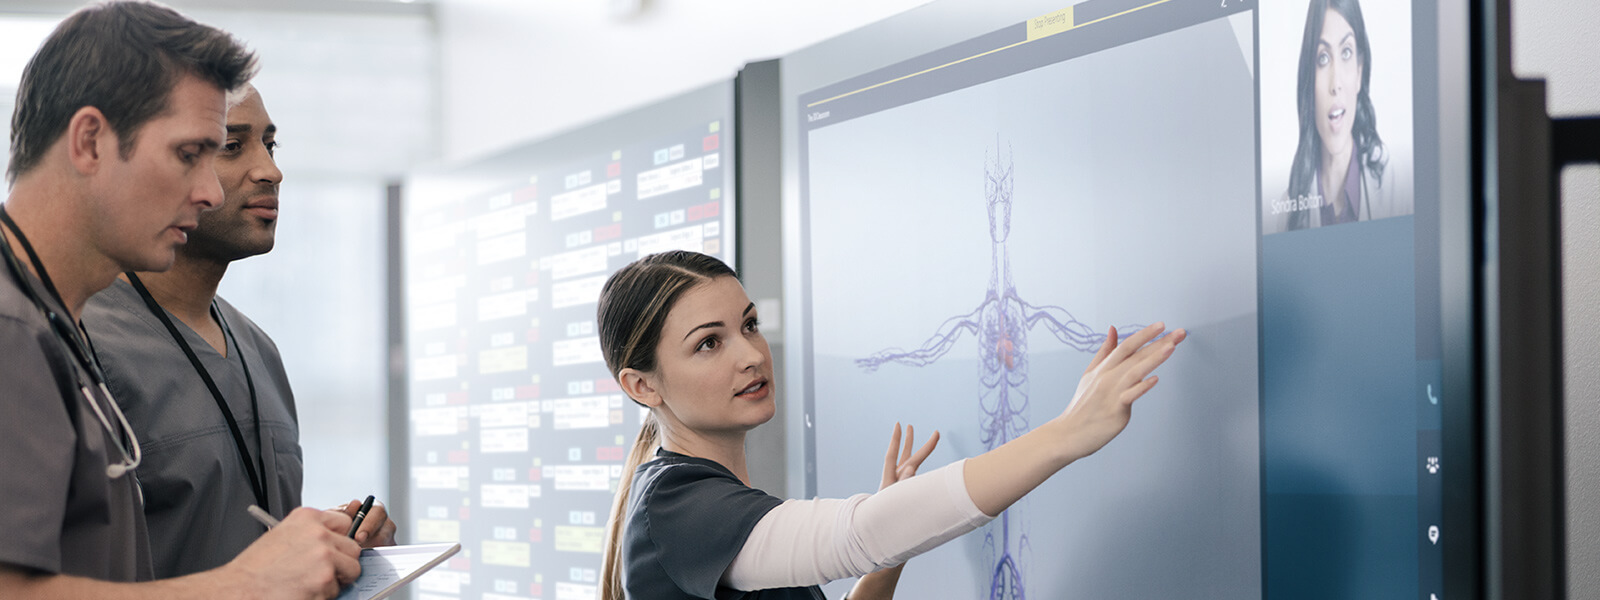 Doctor uses touchscreen on Surface Hub while two other doctors take notes in background.